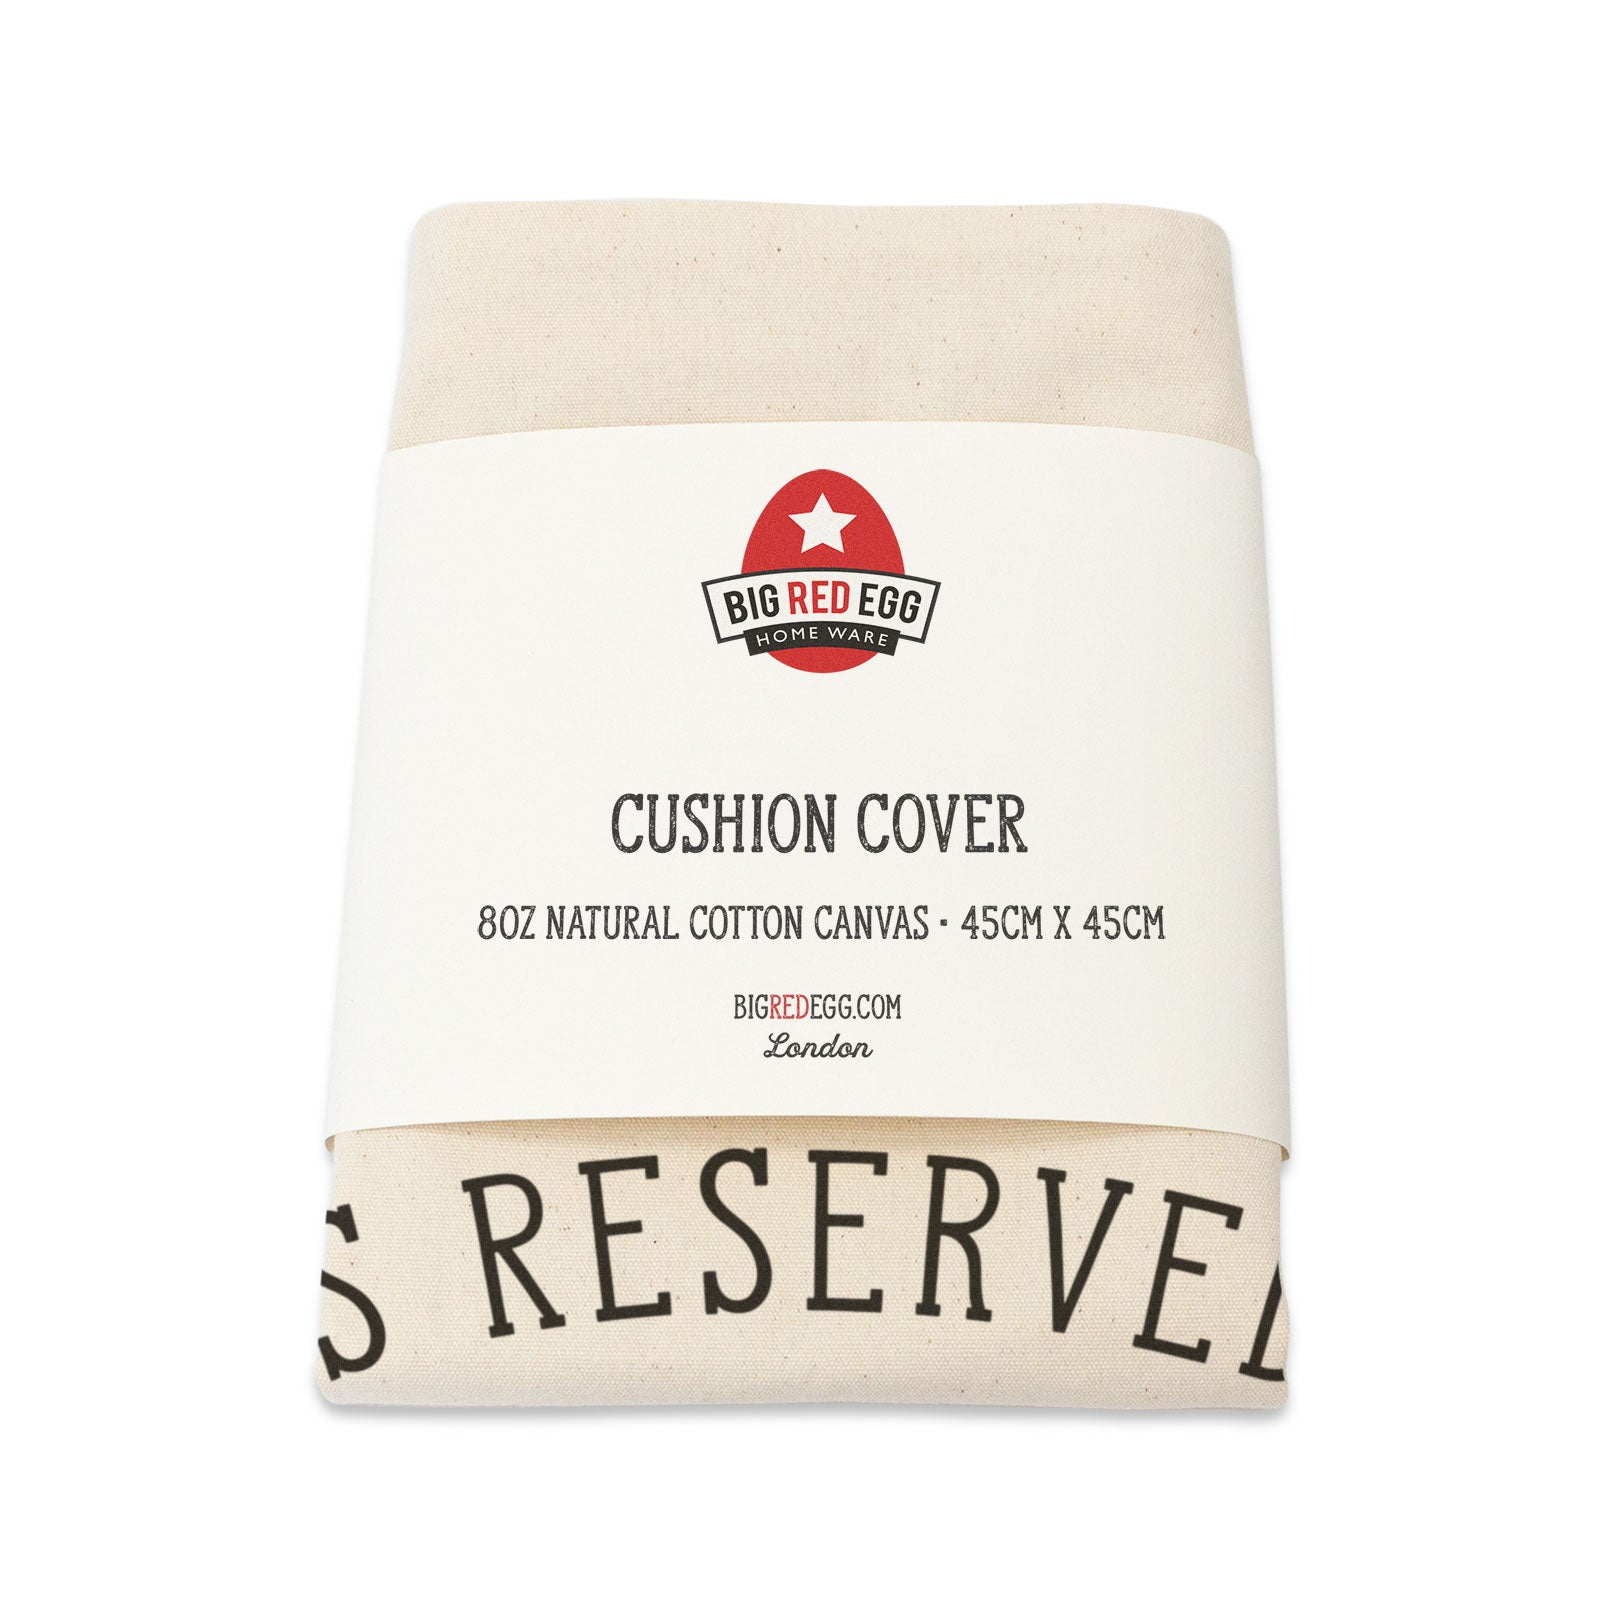 Reserved for the Golden Retriever Cushion Cover